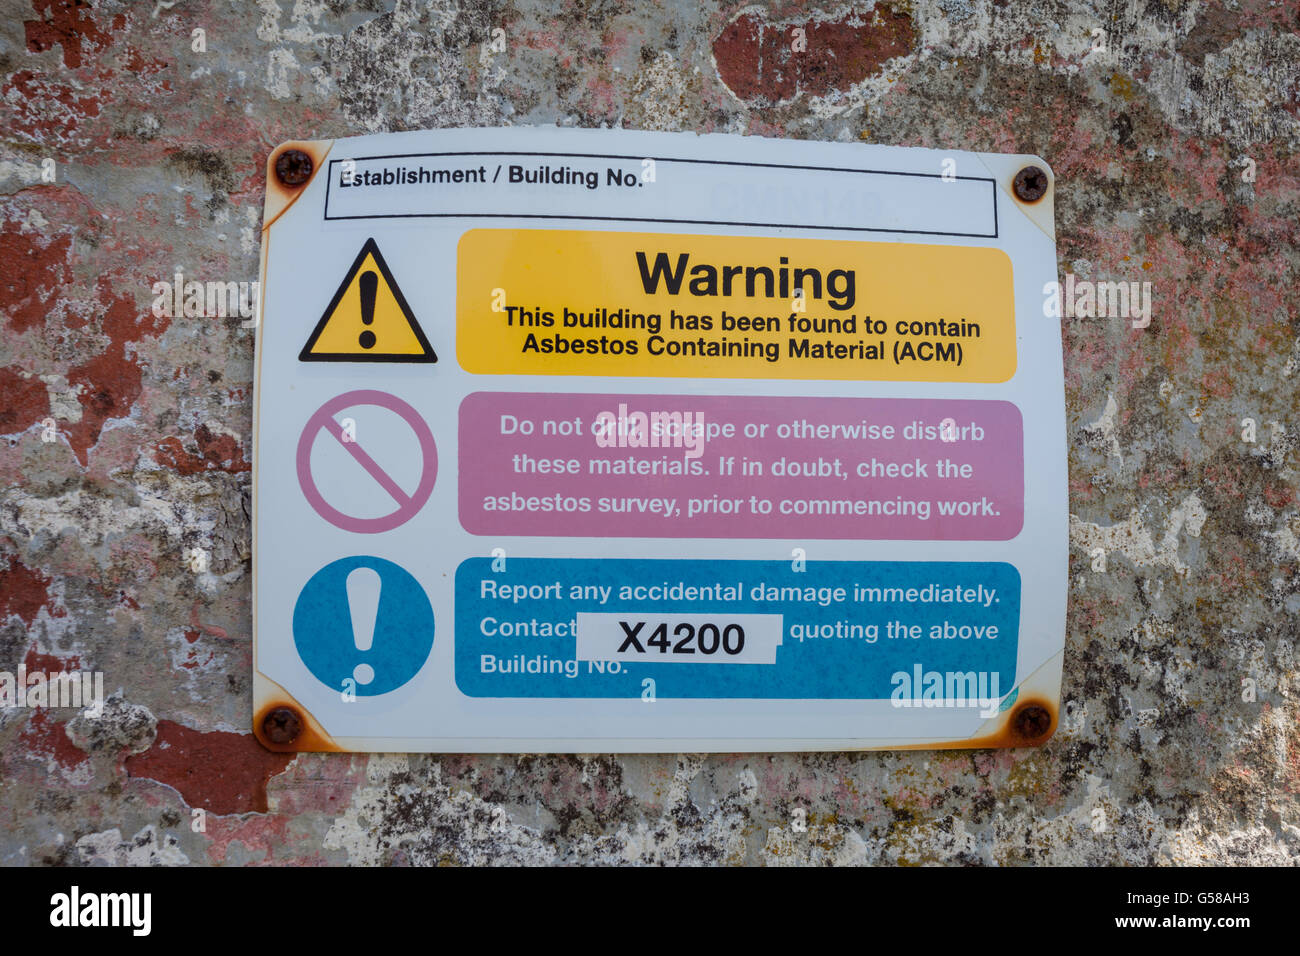 Sign on the exterior wall of a building showing a warning that the building contains asbestos. - Stock Image